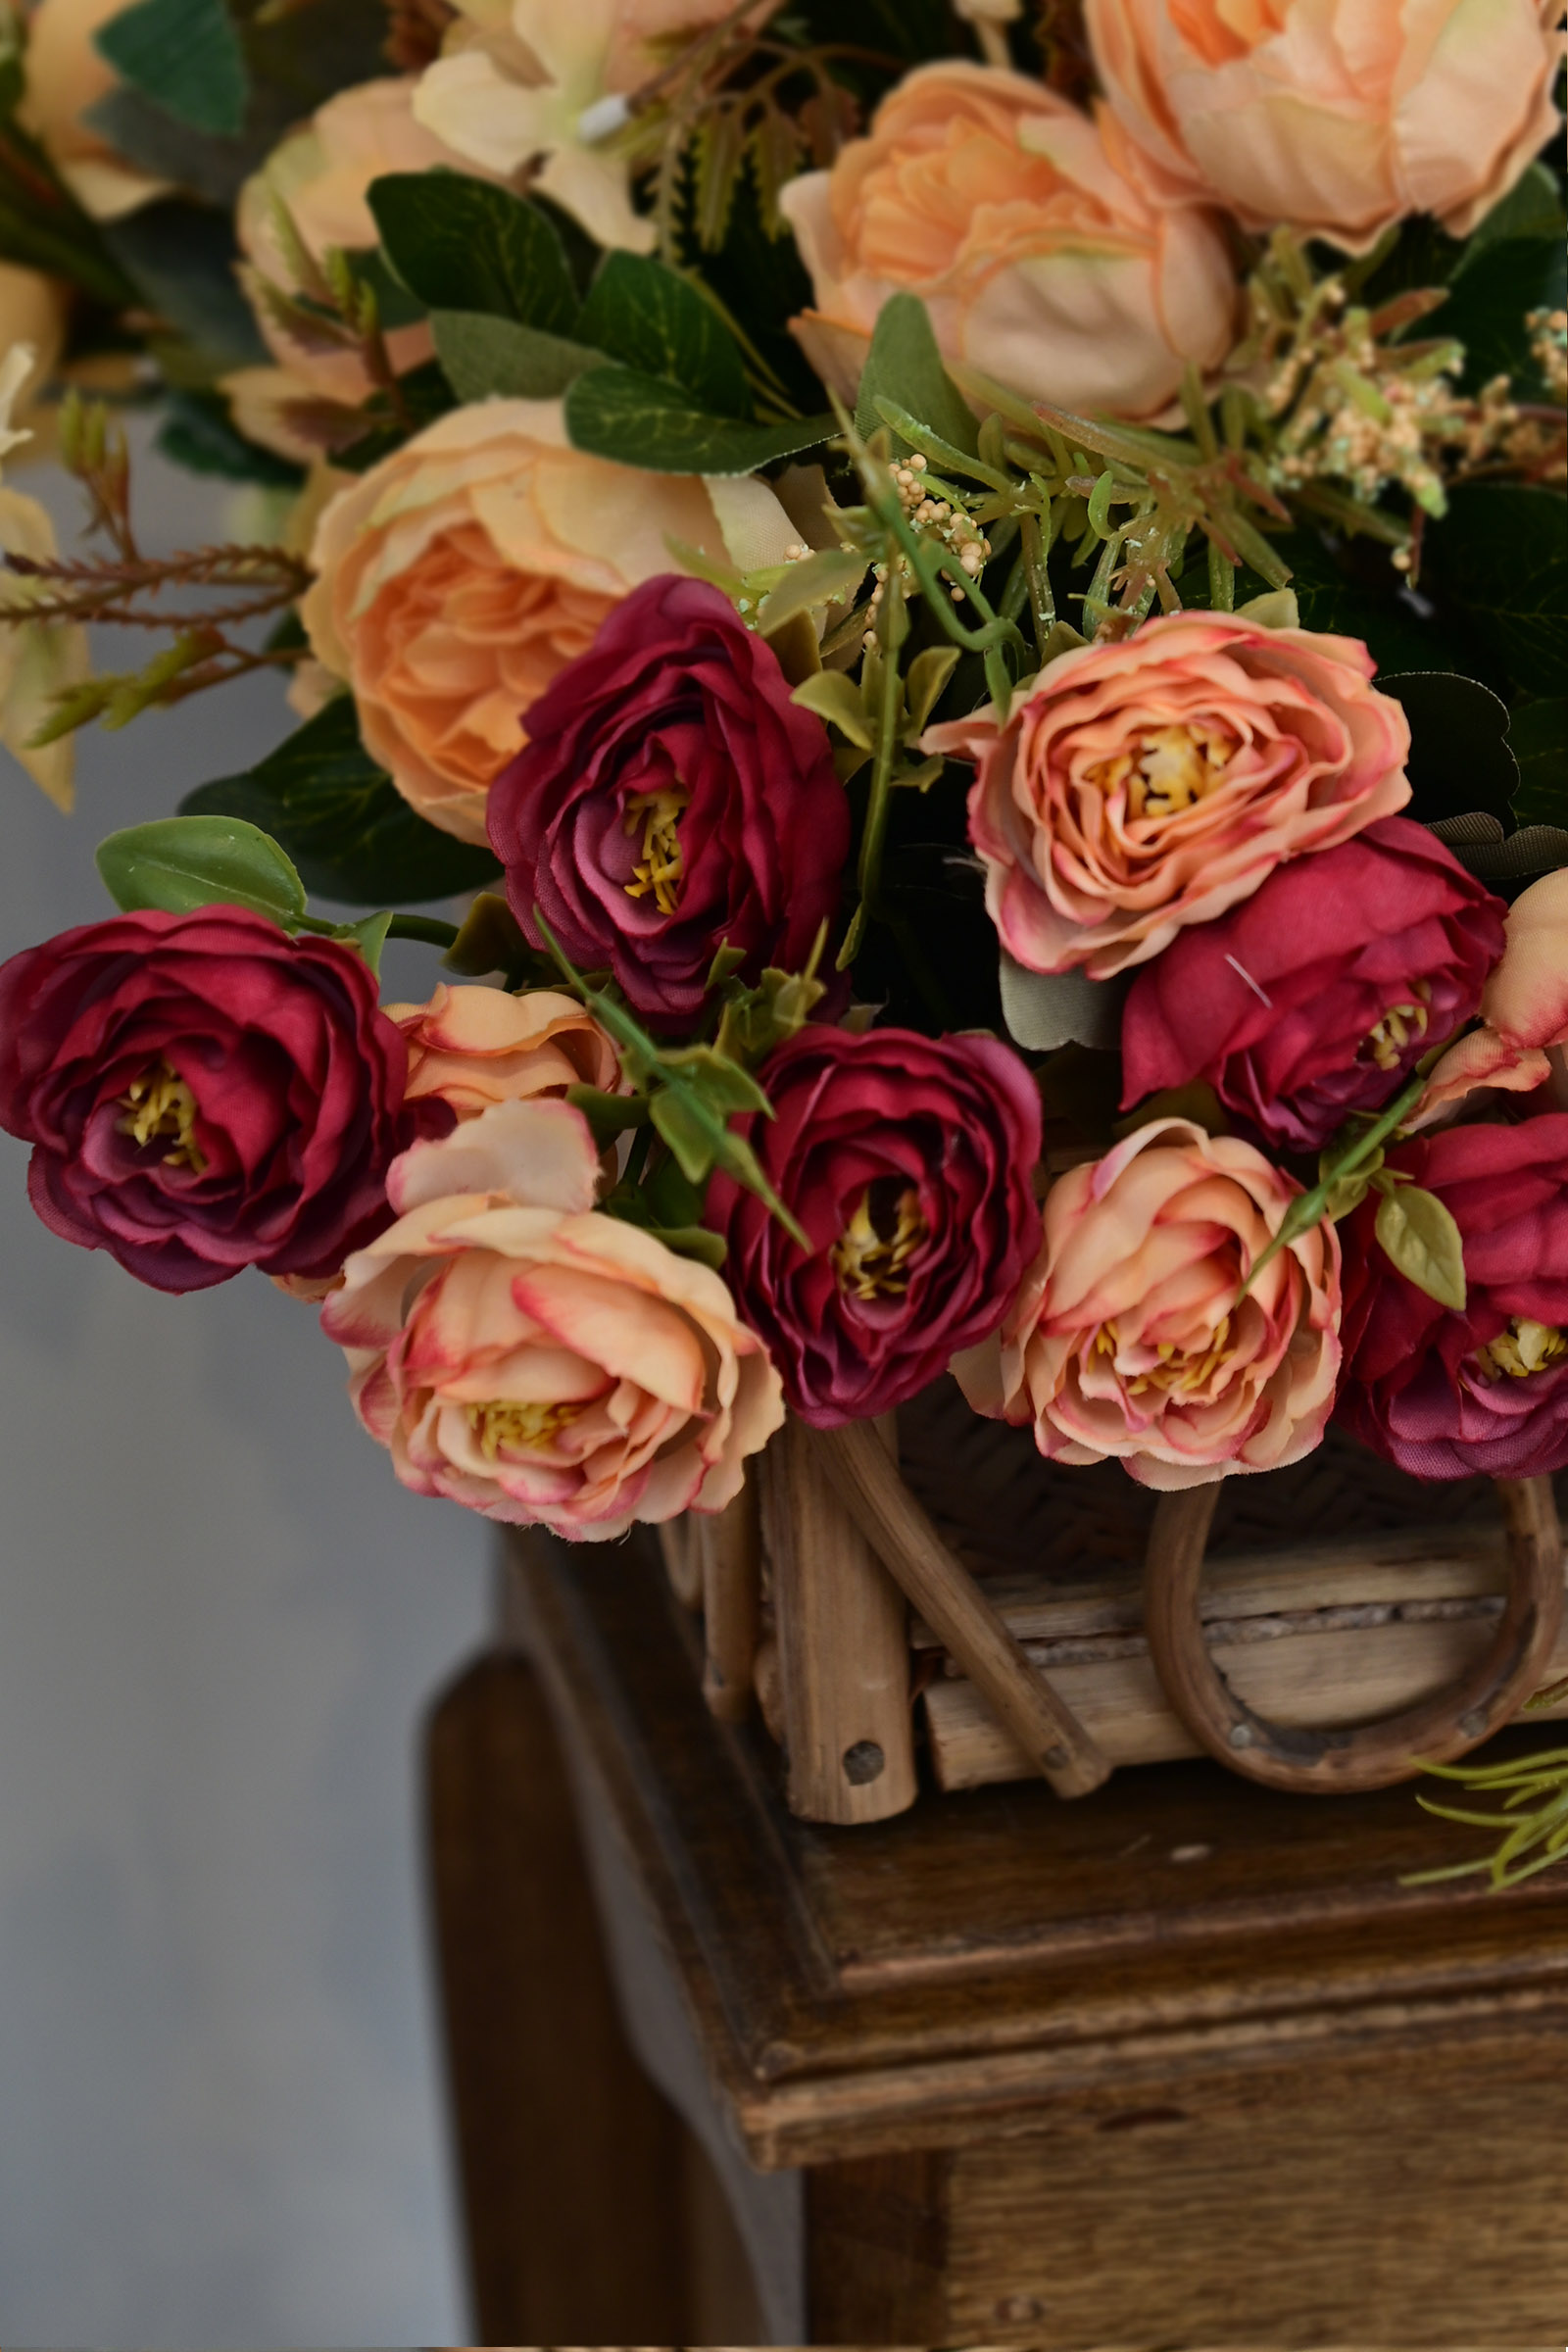 Bunch Of Roses Peach & Maroon